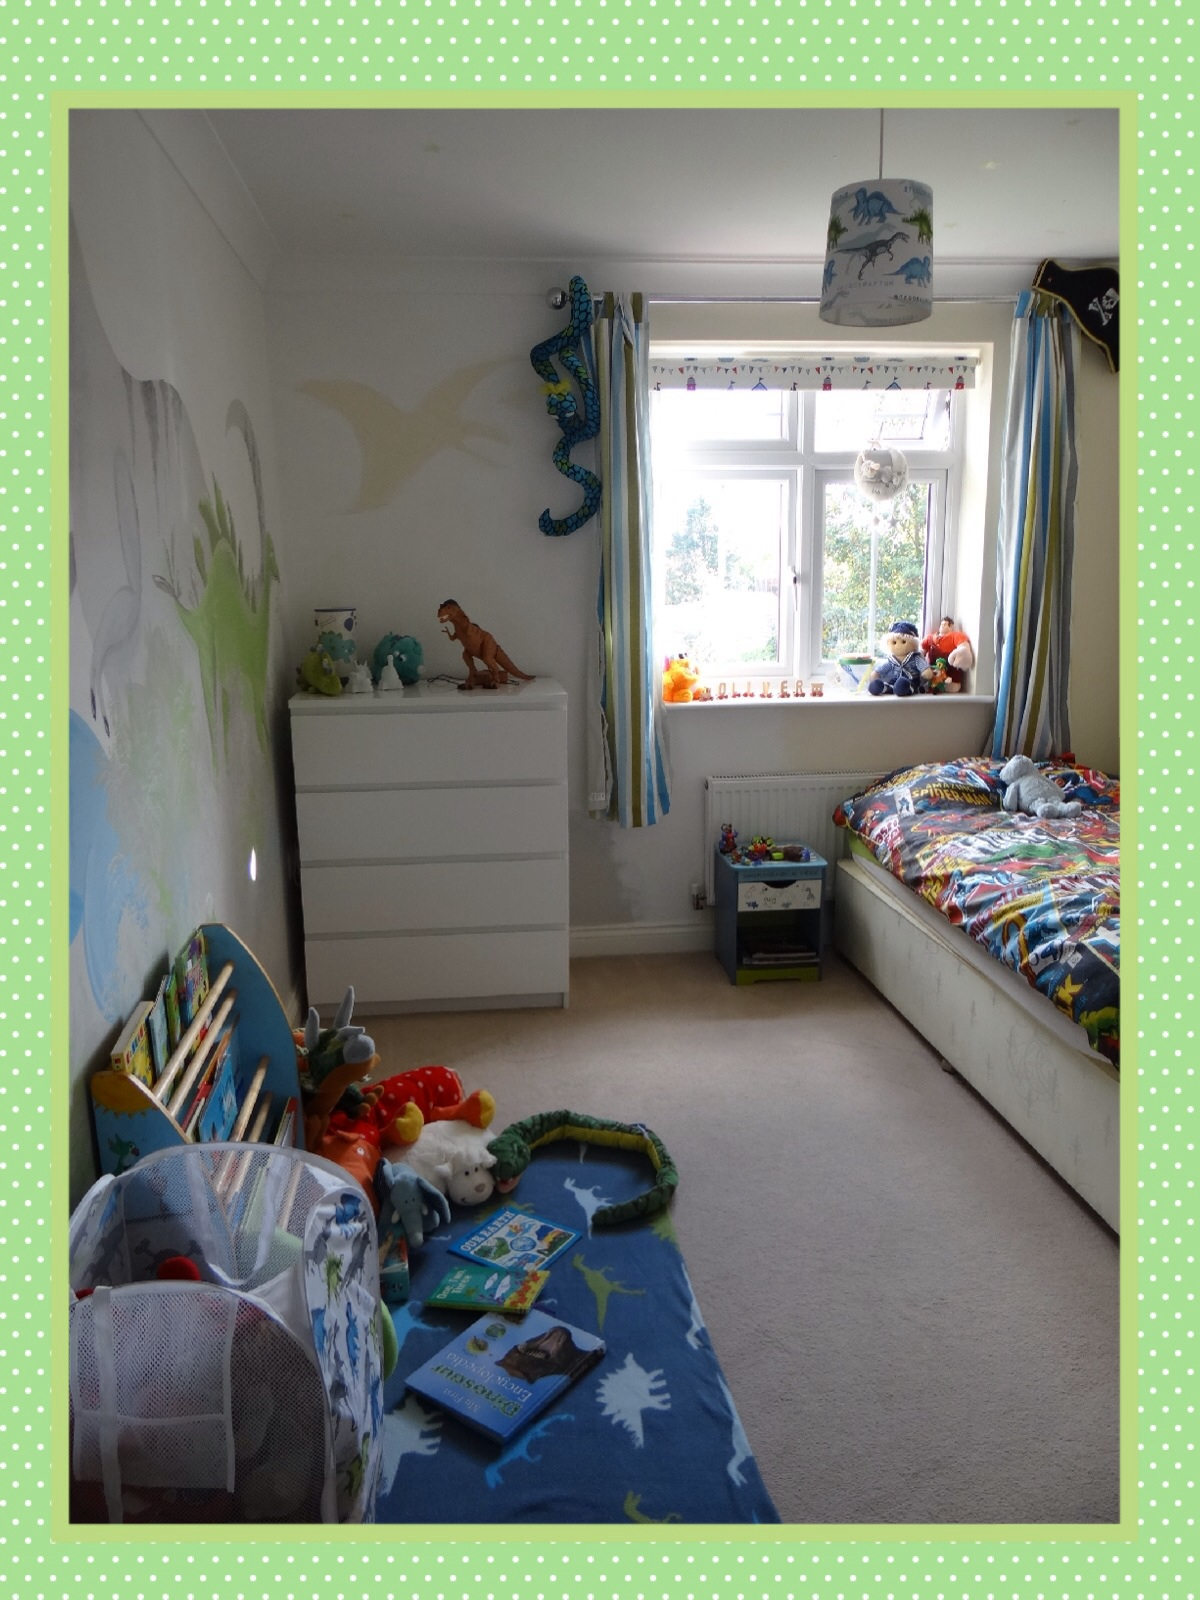 dinosaur bedroom. We didn t need to add any furniture this dinosaur bedroom as everything  already had a place it just wasn being used efficiently image Boys Dinosaur Bedroom Hidden Space